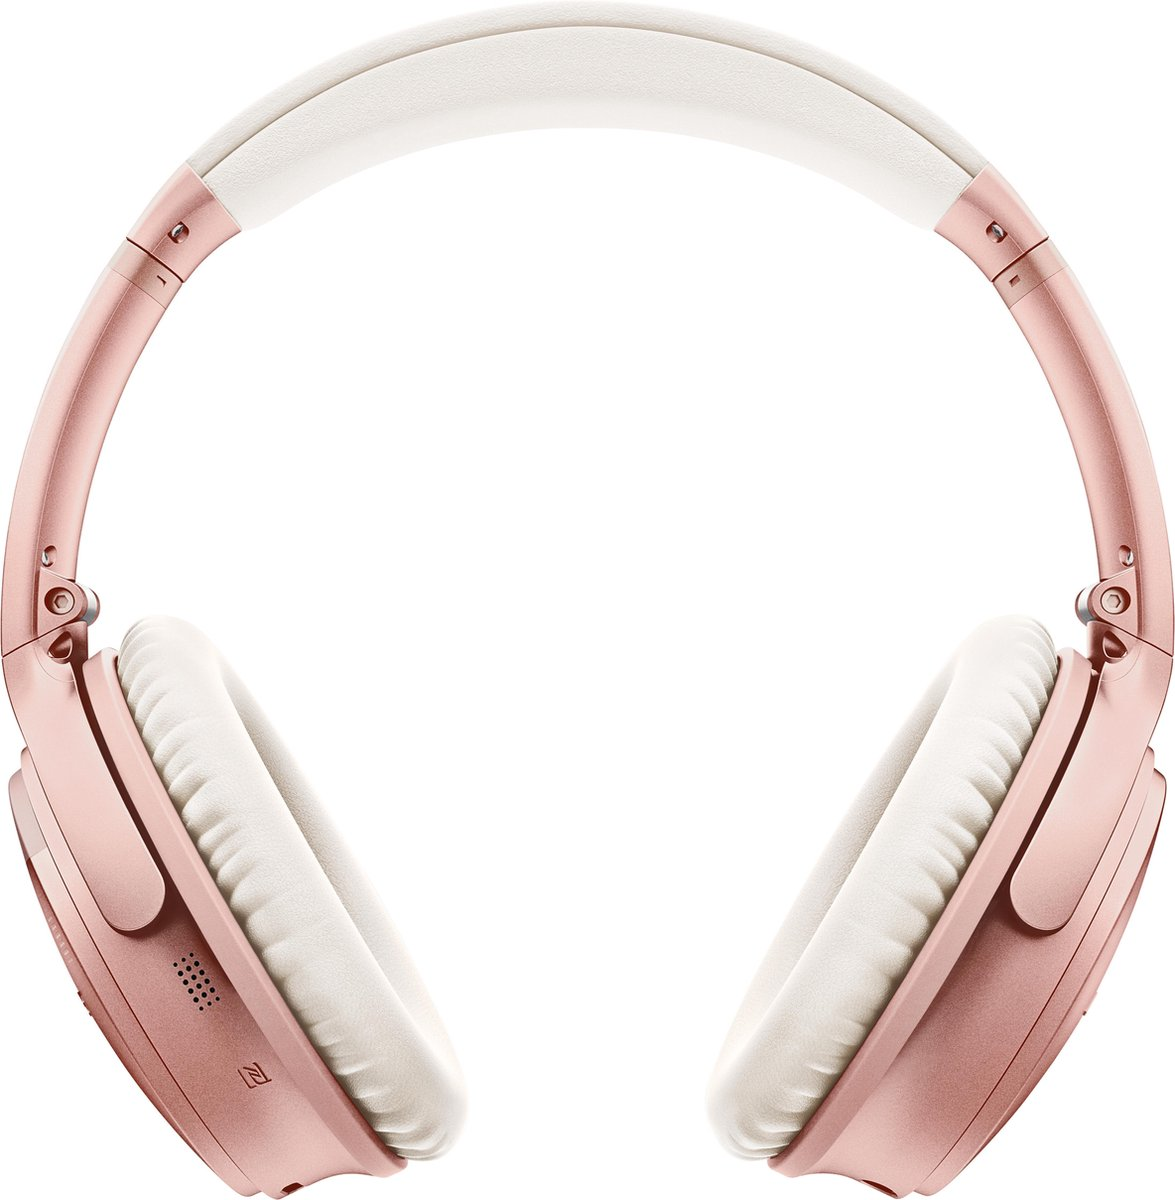 Bose QuietComfort 35 II – Draadloze over-ear koptelefoon met Noise Cancelling – Rose gold